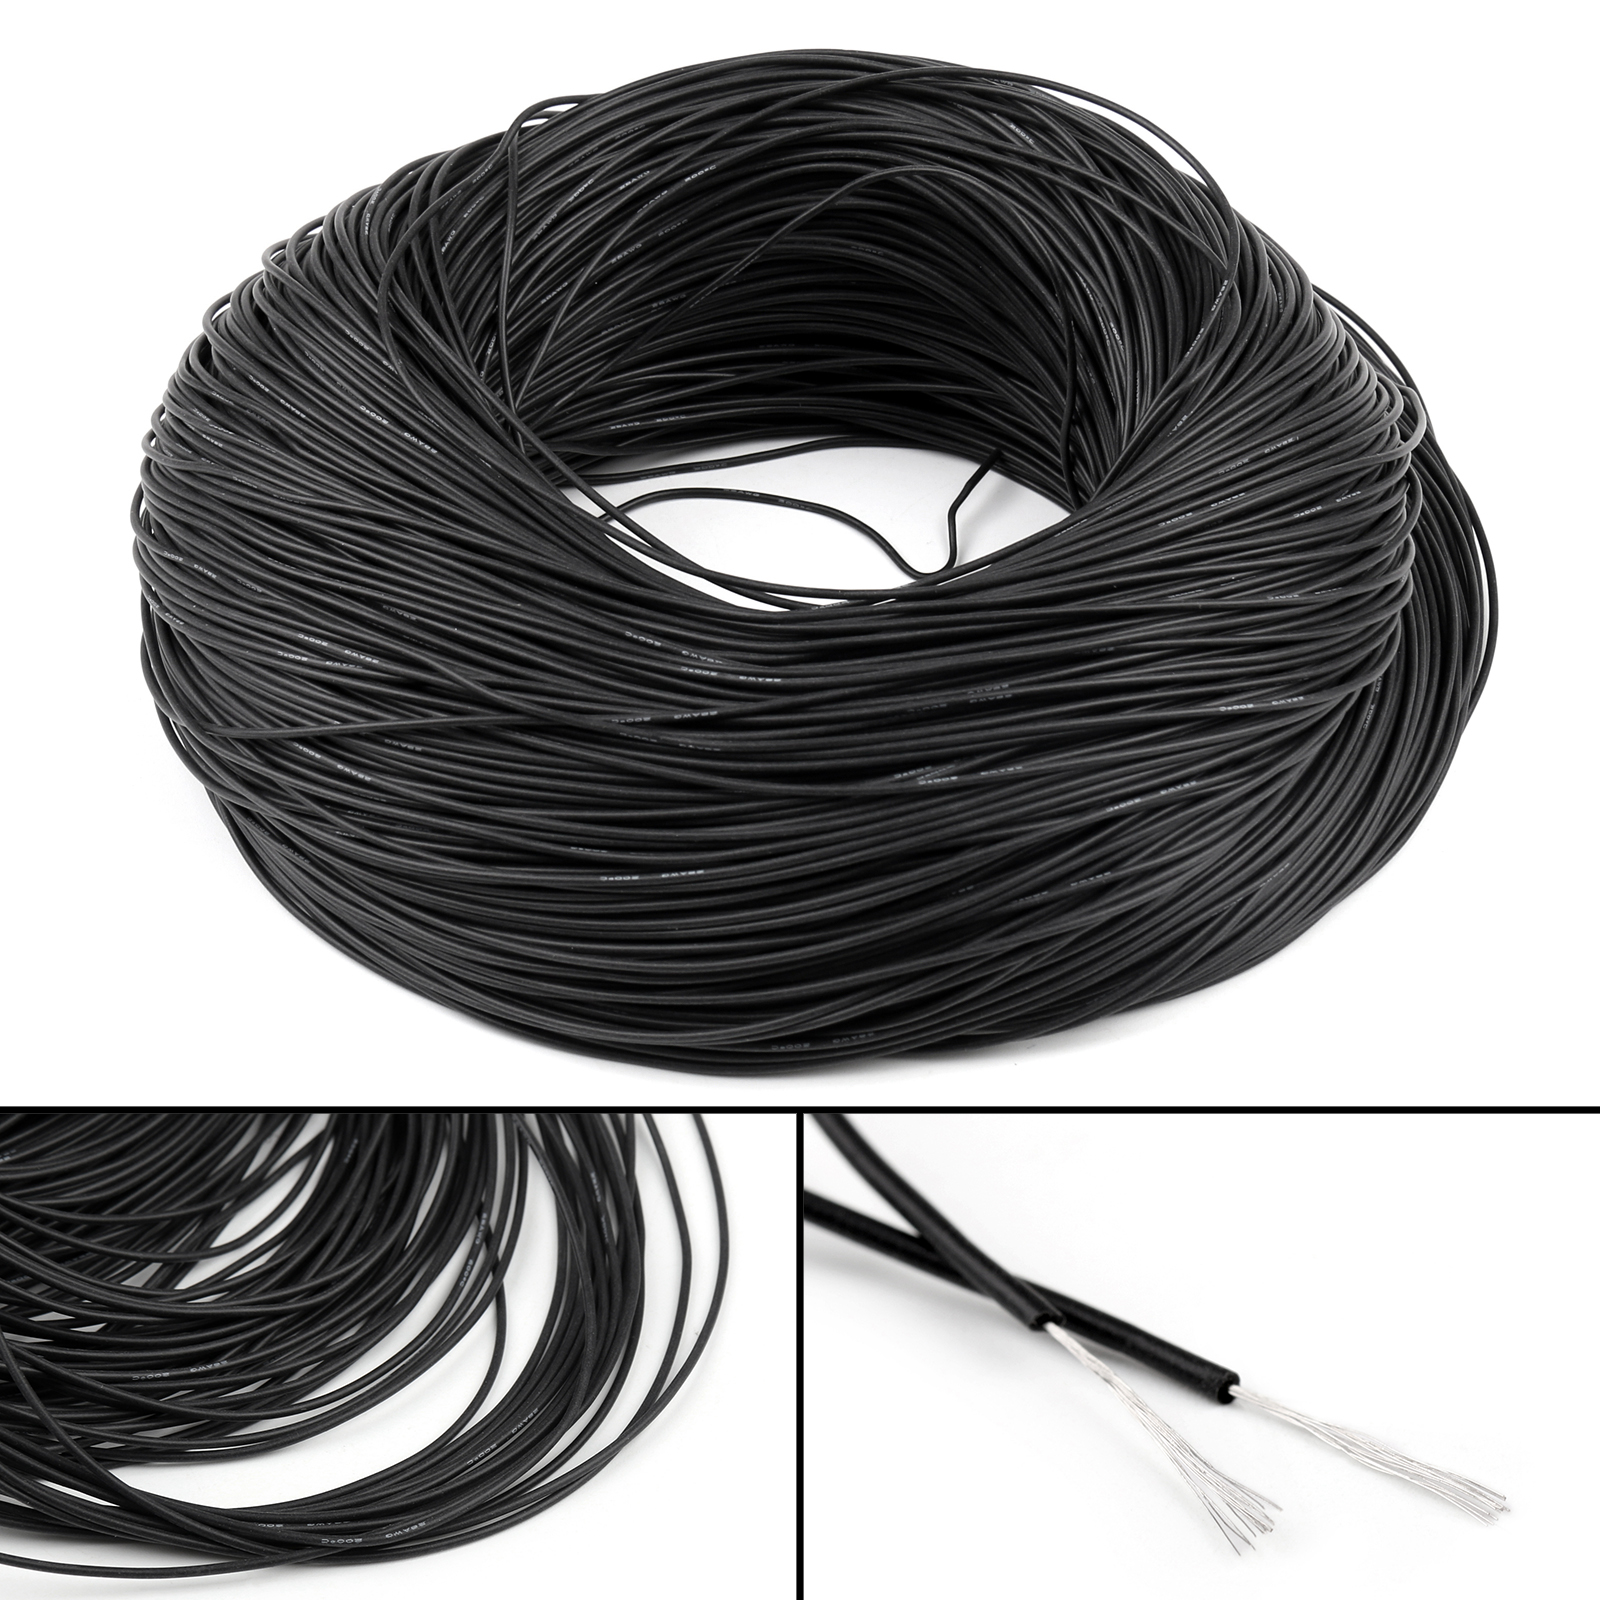 20M Flexible Stranded Silicone Rubber Wire Cable 28AWG Gauge OD 1.3 ...